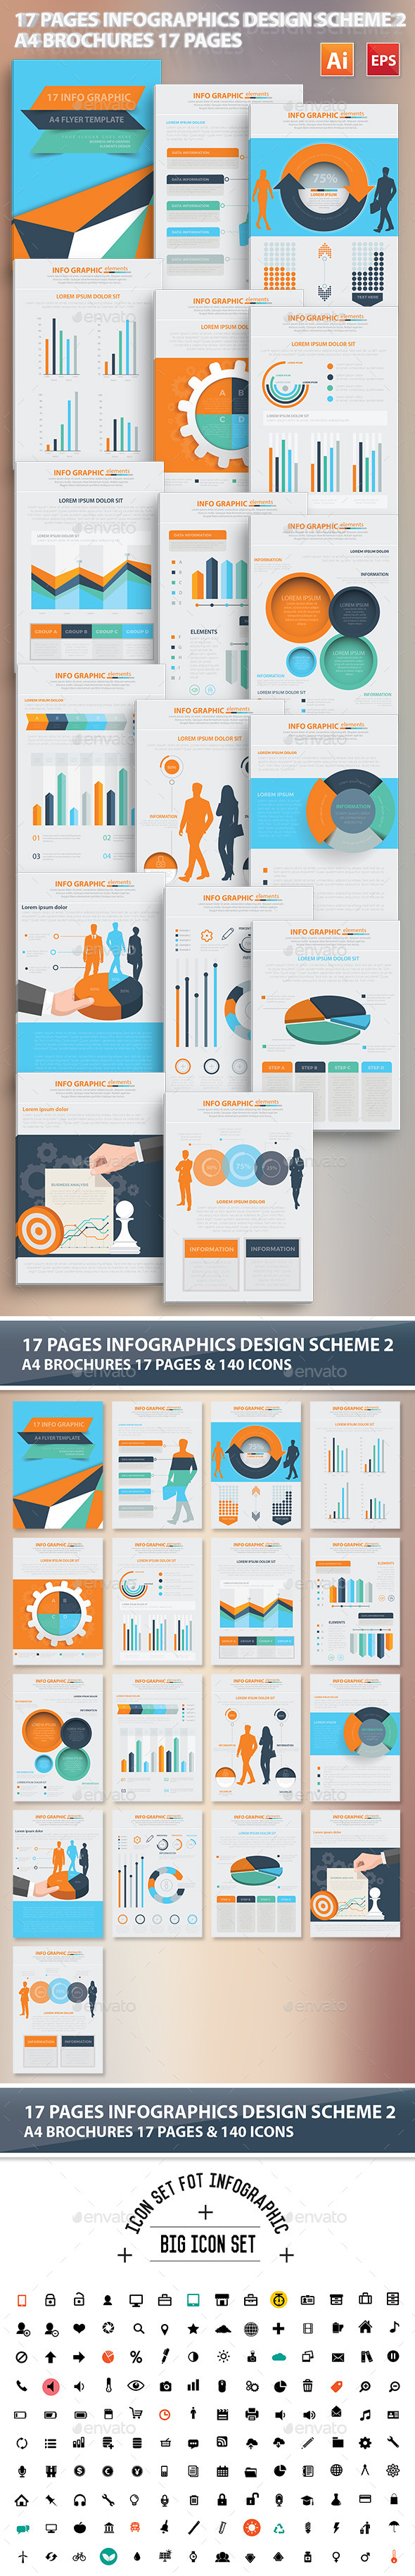 17 Pages Infographics Design Scheme 2 - Infographics